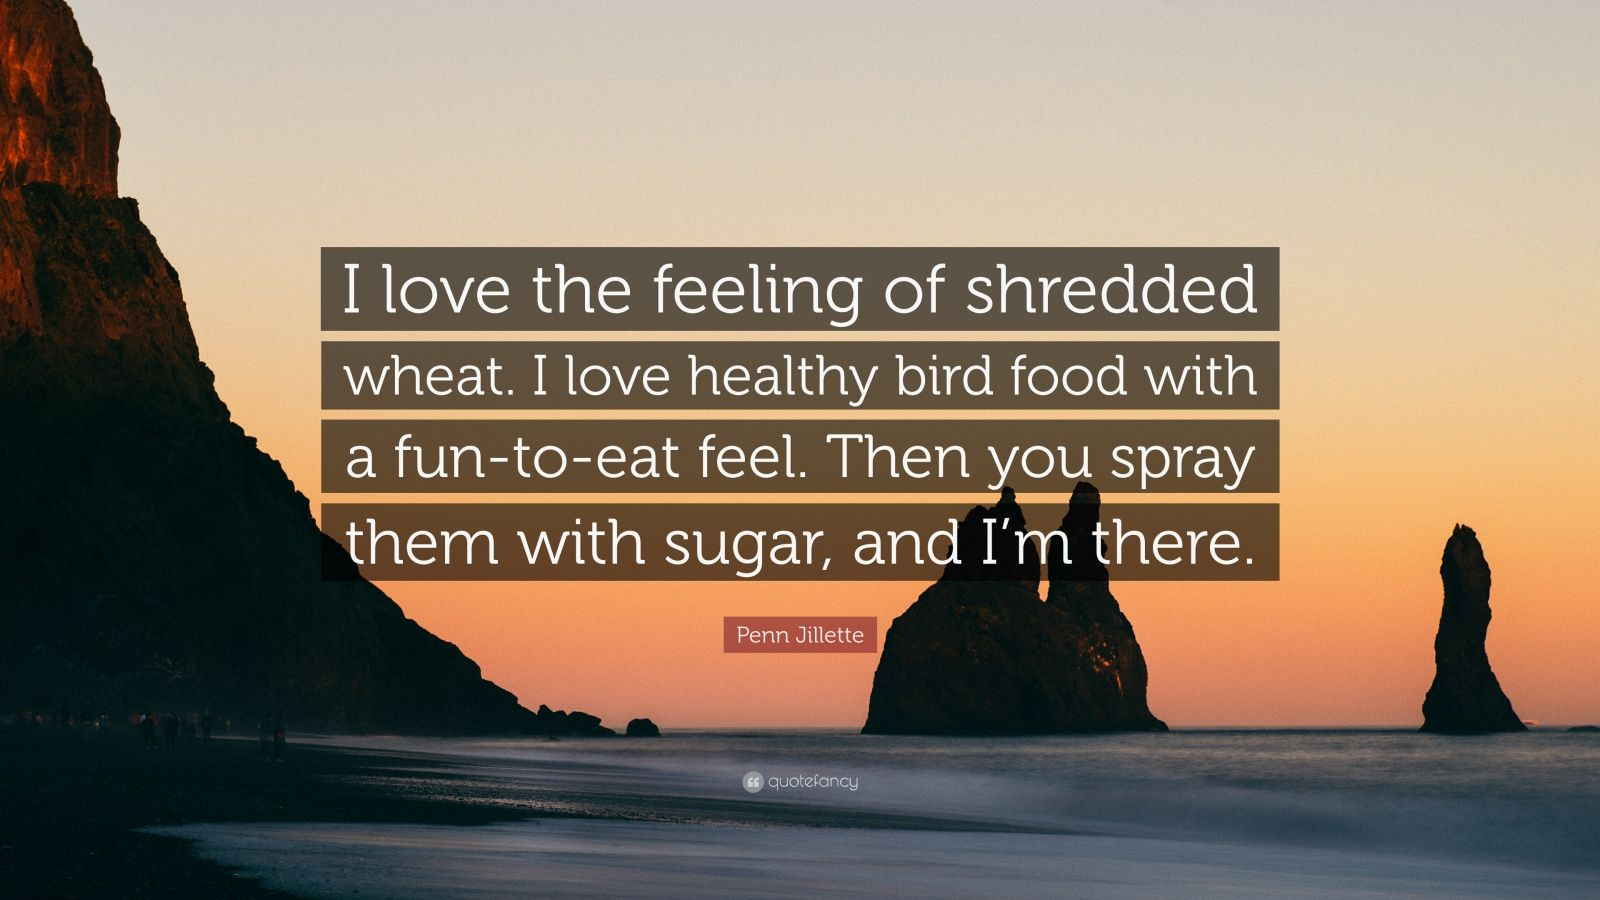 "Penn Jillette Quote: ""I love the feeling of shredded wheat. I love healthy bird food with a fun-to-eat feel. Then you spray them with sugar, and I'm there."""